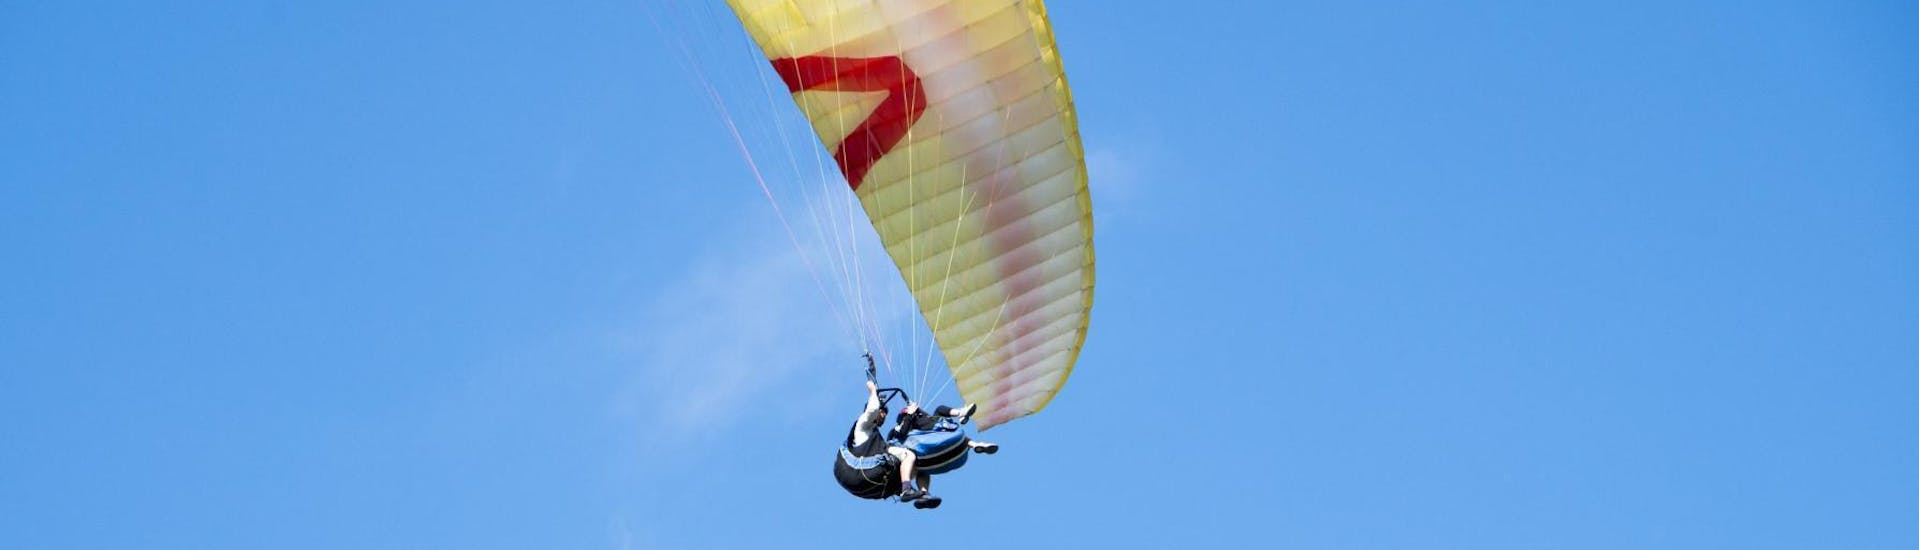 thermic-tandem-paragliding-from-krvavec-mountain-sky-riders-paragliding-croatia-hero